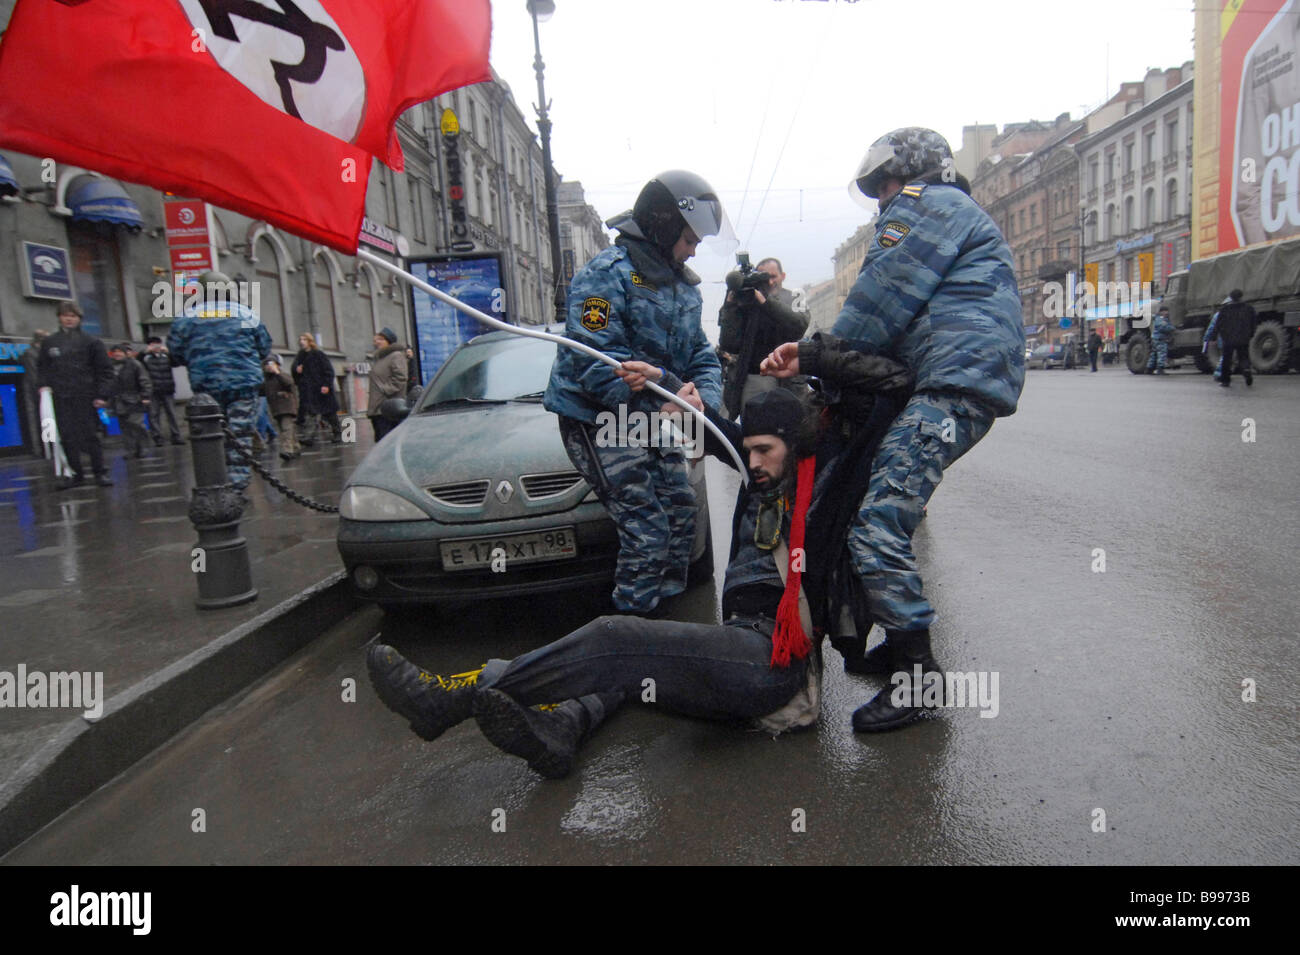 Clashes of special police forces with participants in the unauthorized opposition action March of the disagreeing - Stock Image